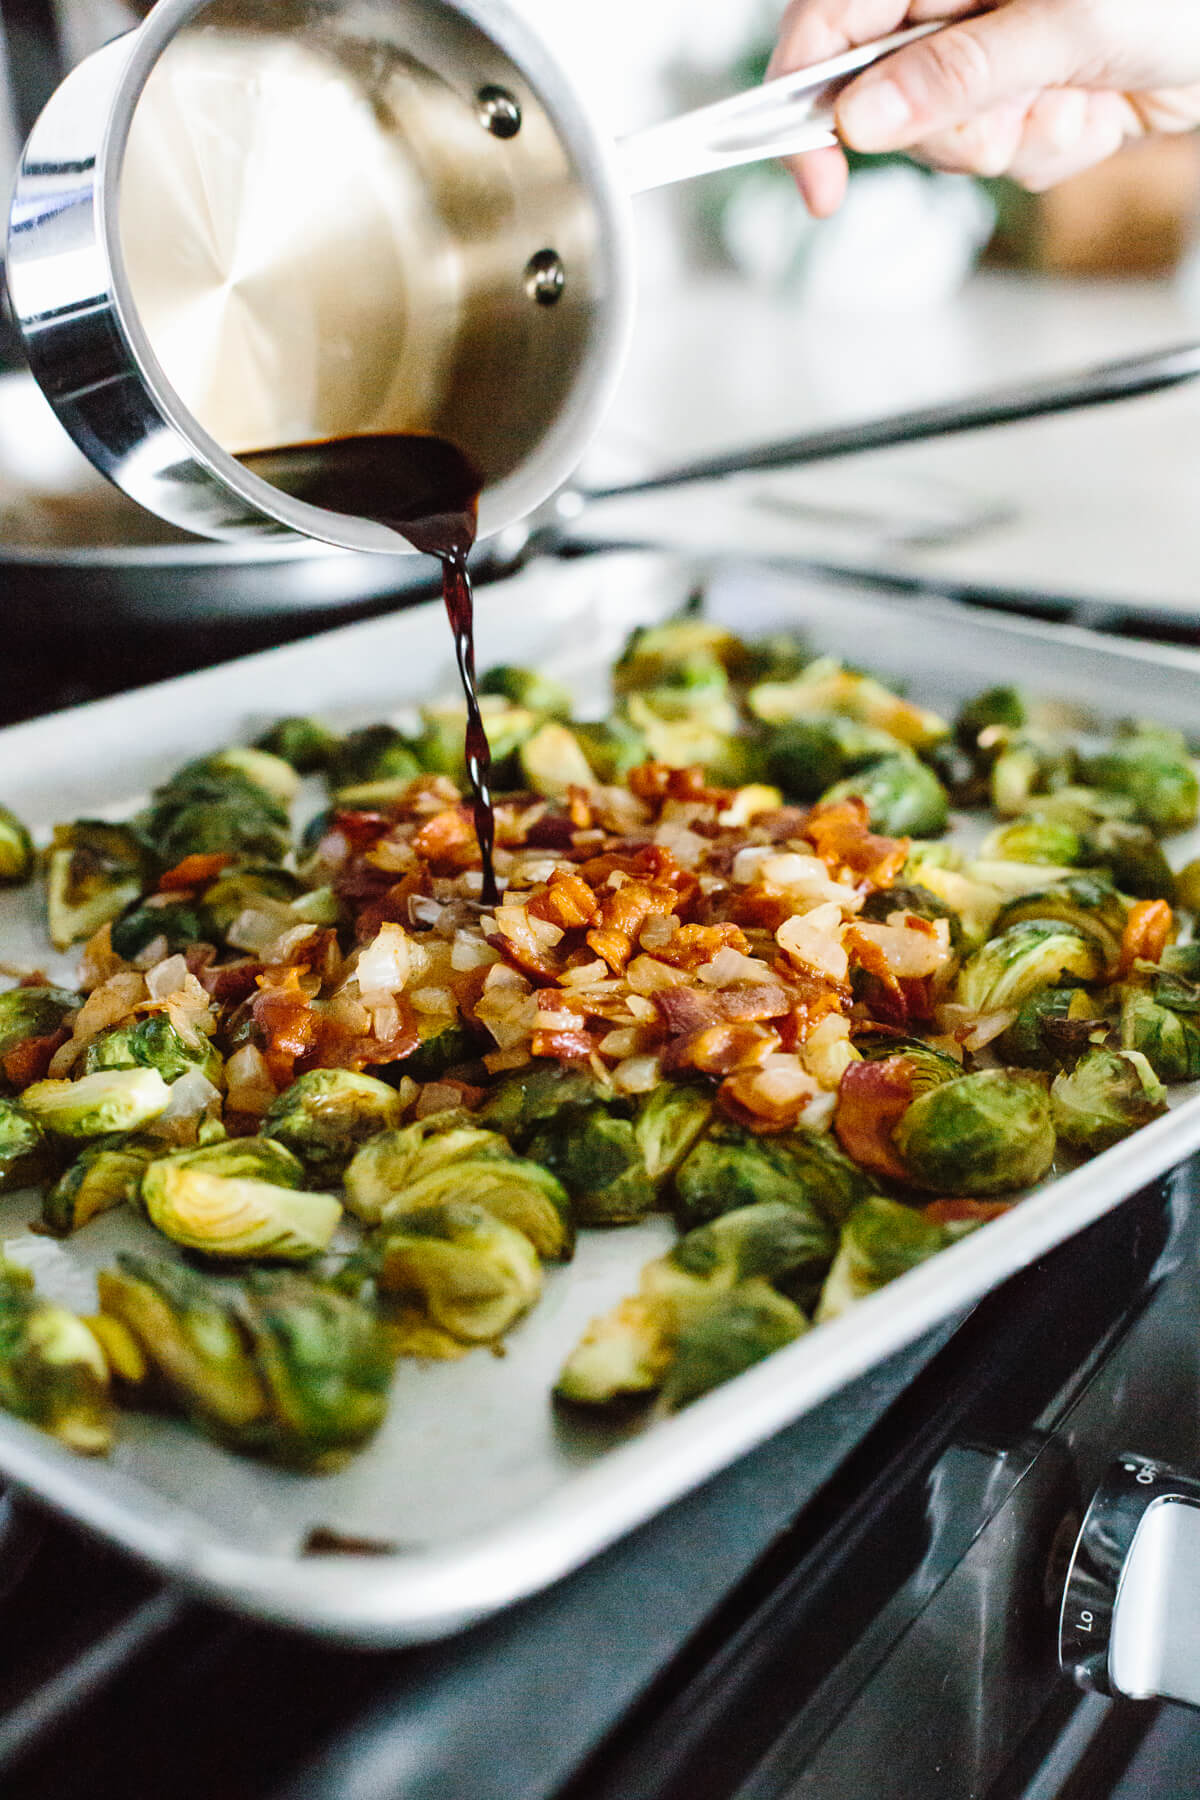 Pouring the balsamic glaze on the roasted brussels sprouts.